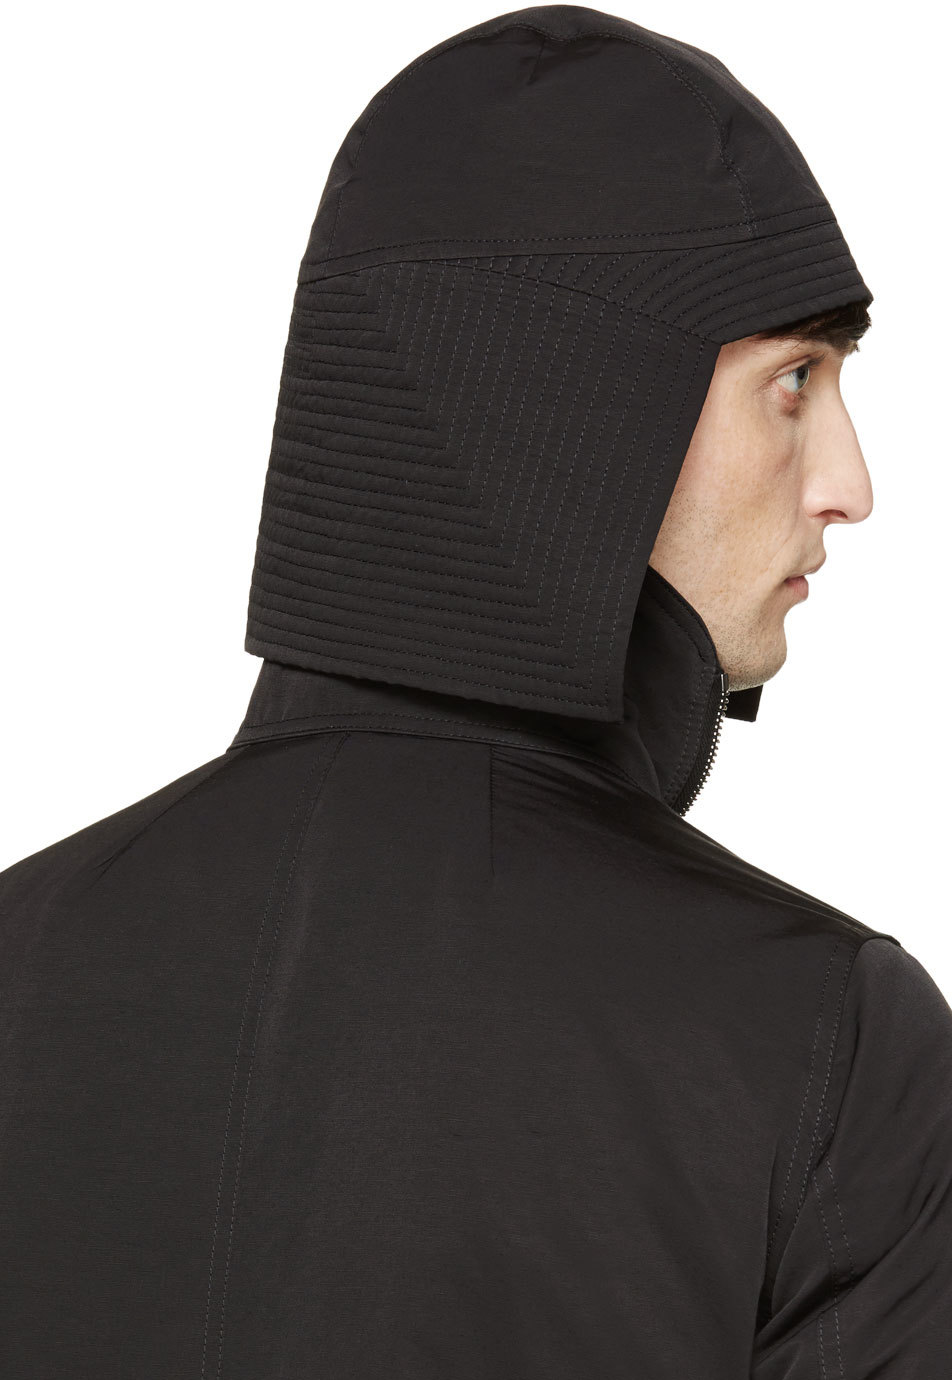 Lyst Rick Owens Black Kabuto Hat In For Men 092e2a14a588